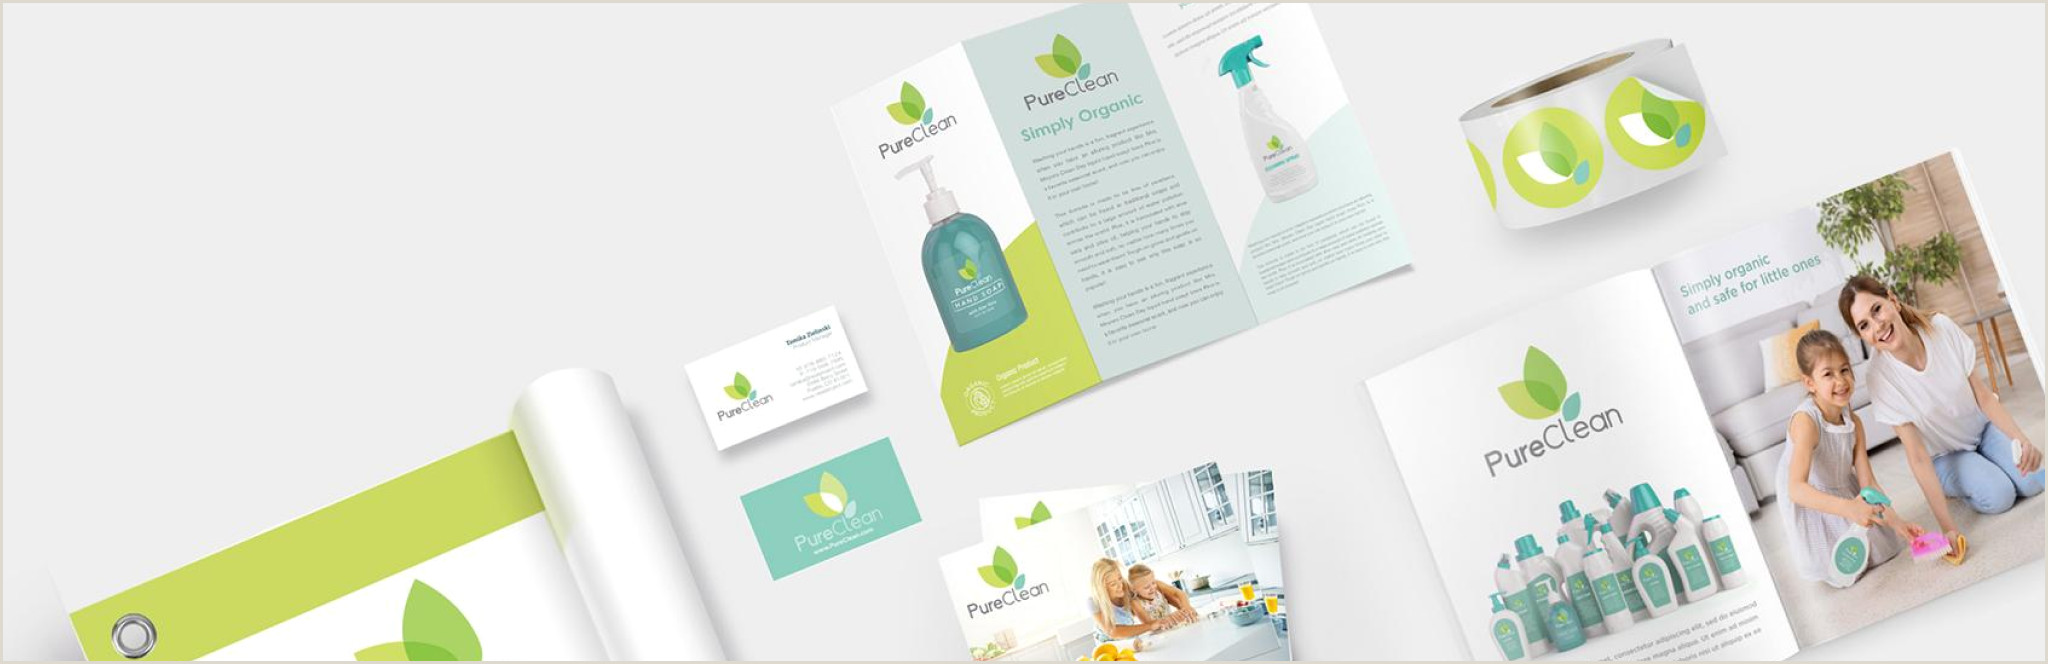 Best Business Cards Co Printplace High Quality Line Printing Services